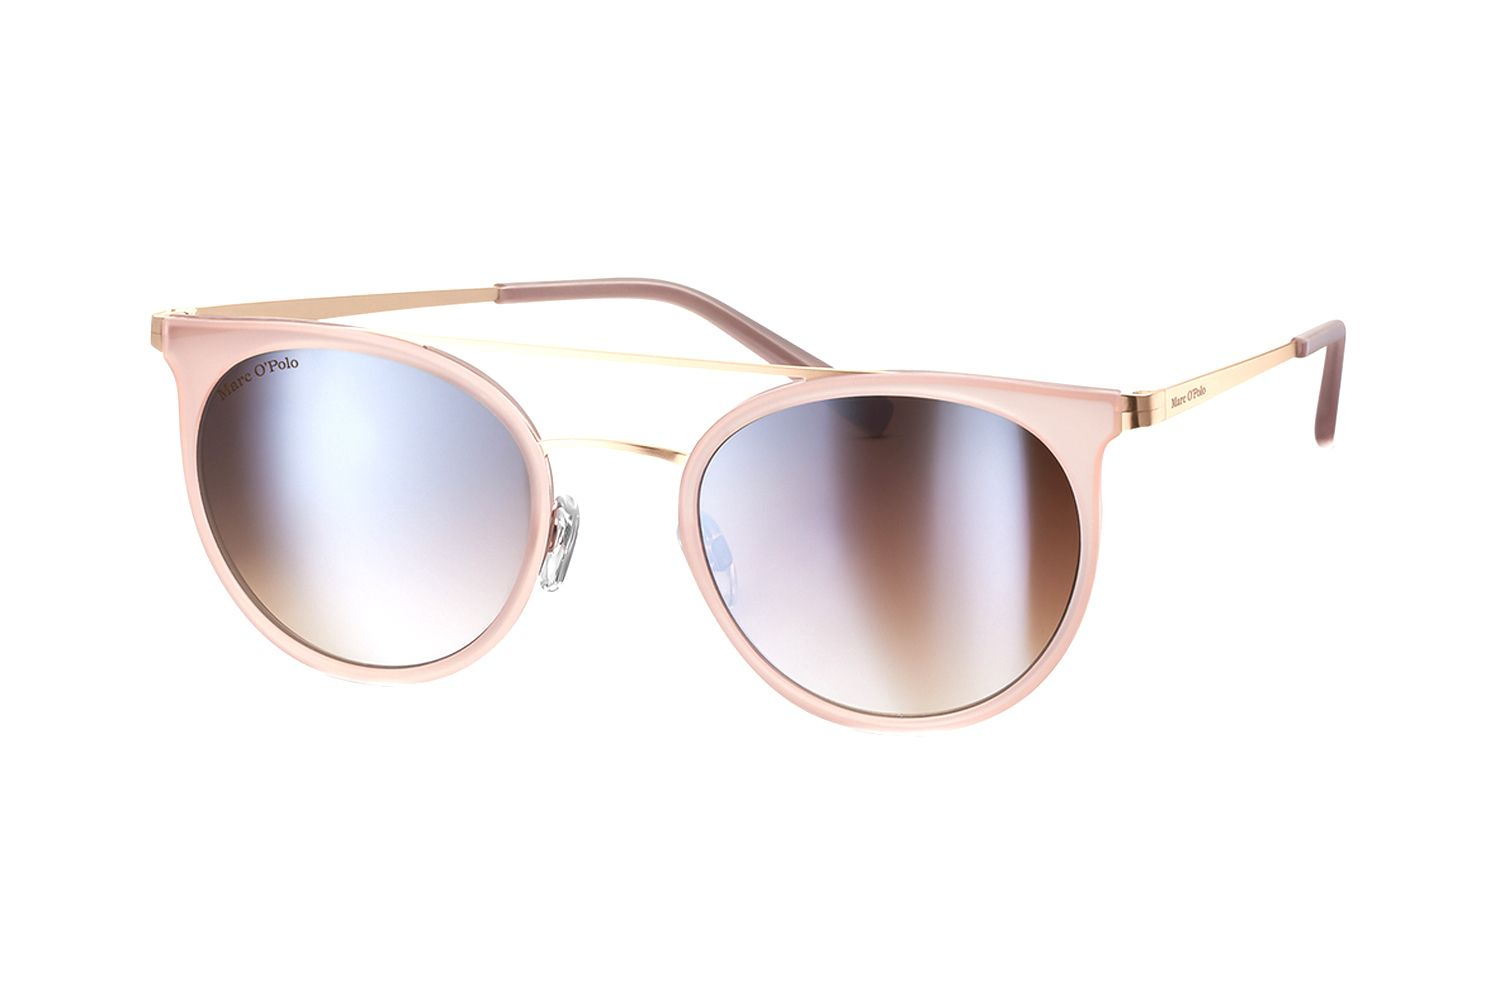 Marc O Polo 505068 80 Sonnenbrille In Mauve Rosegold Matt Sonnenbrille Brille Brille Putzen